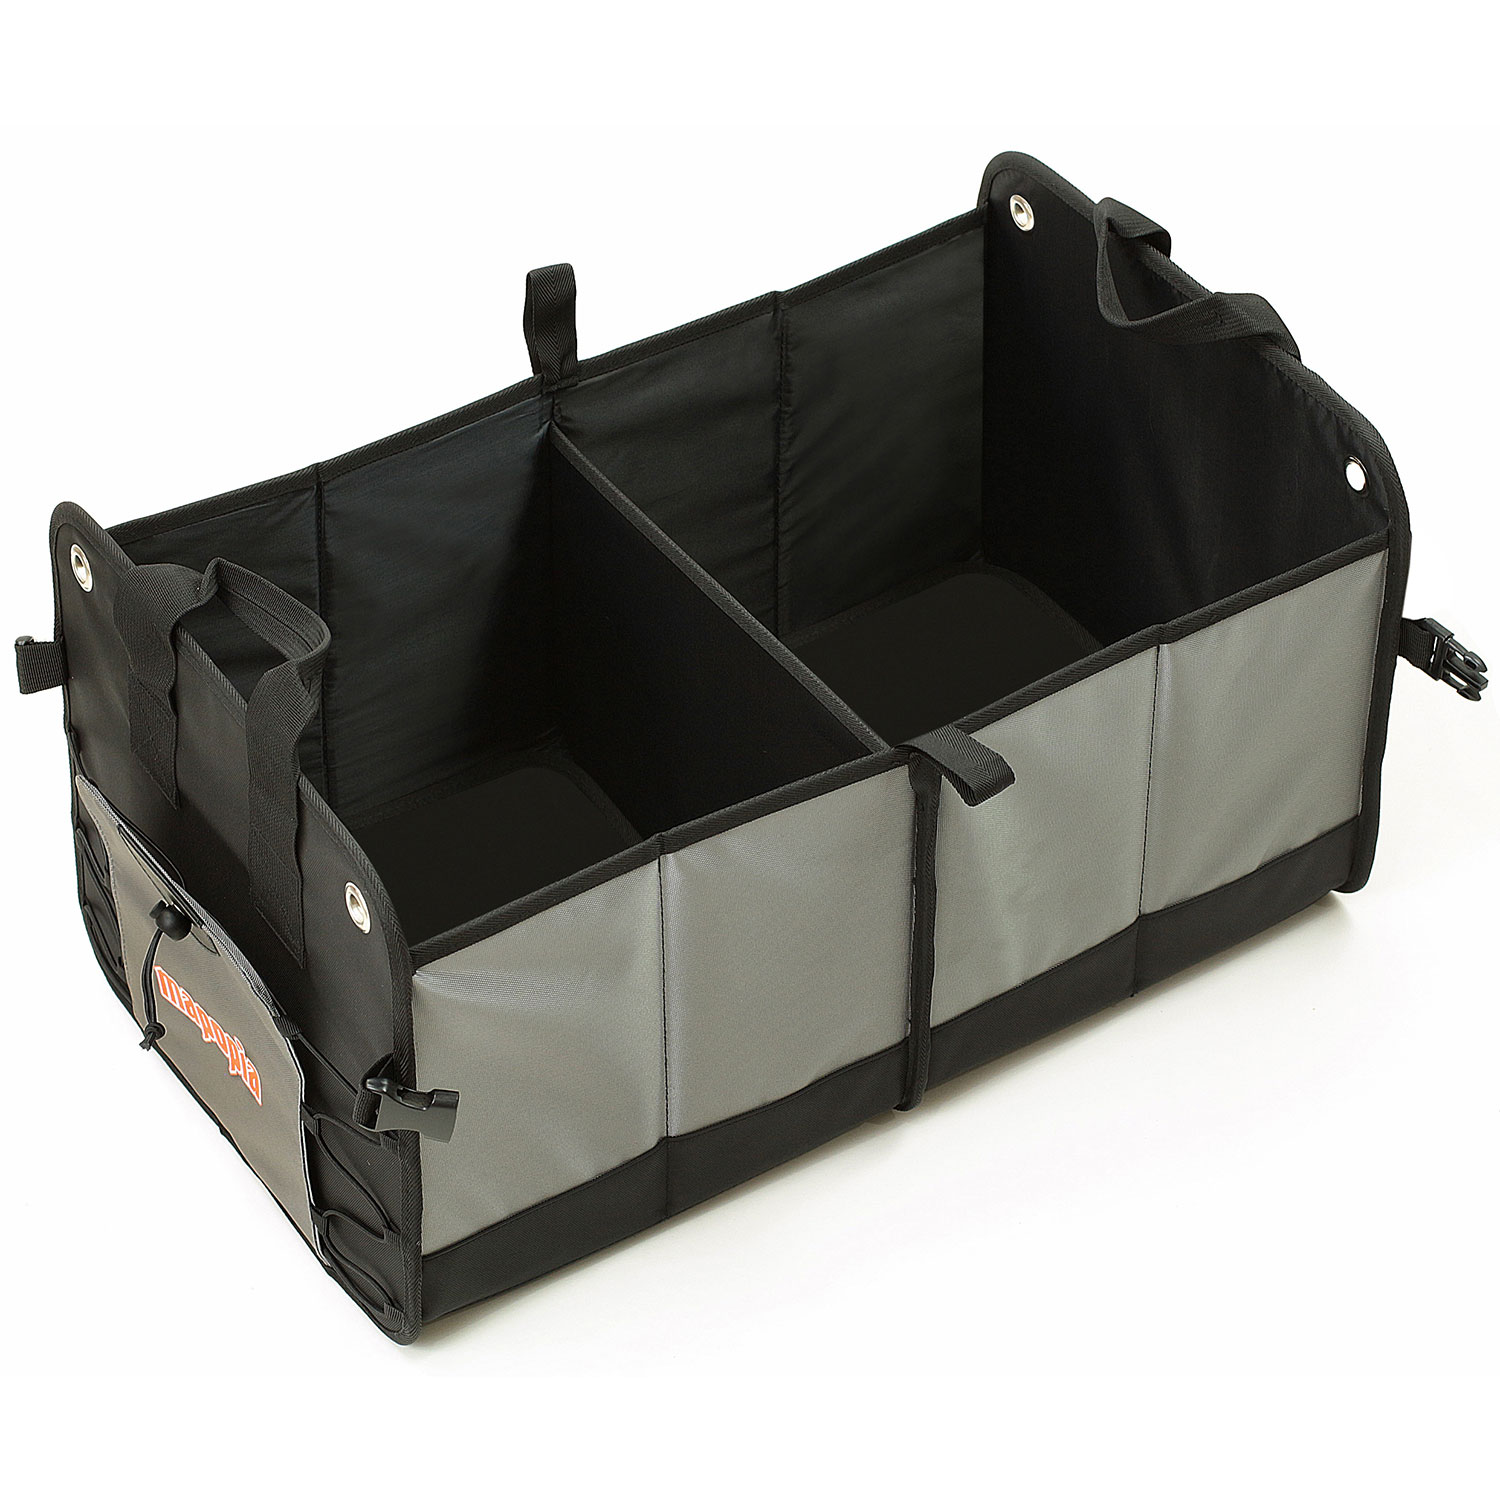 Trunk Organizer For Car SUV Minivan And Truck